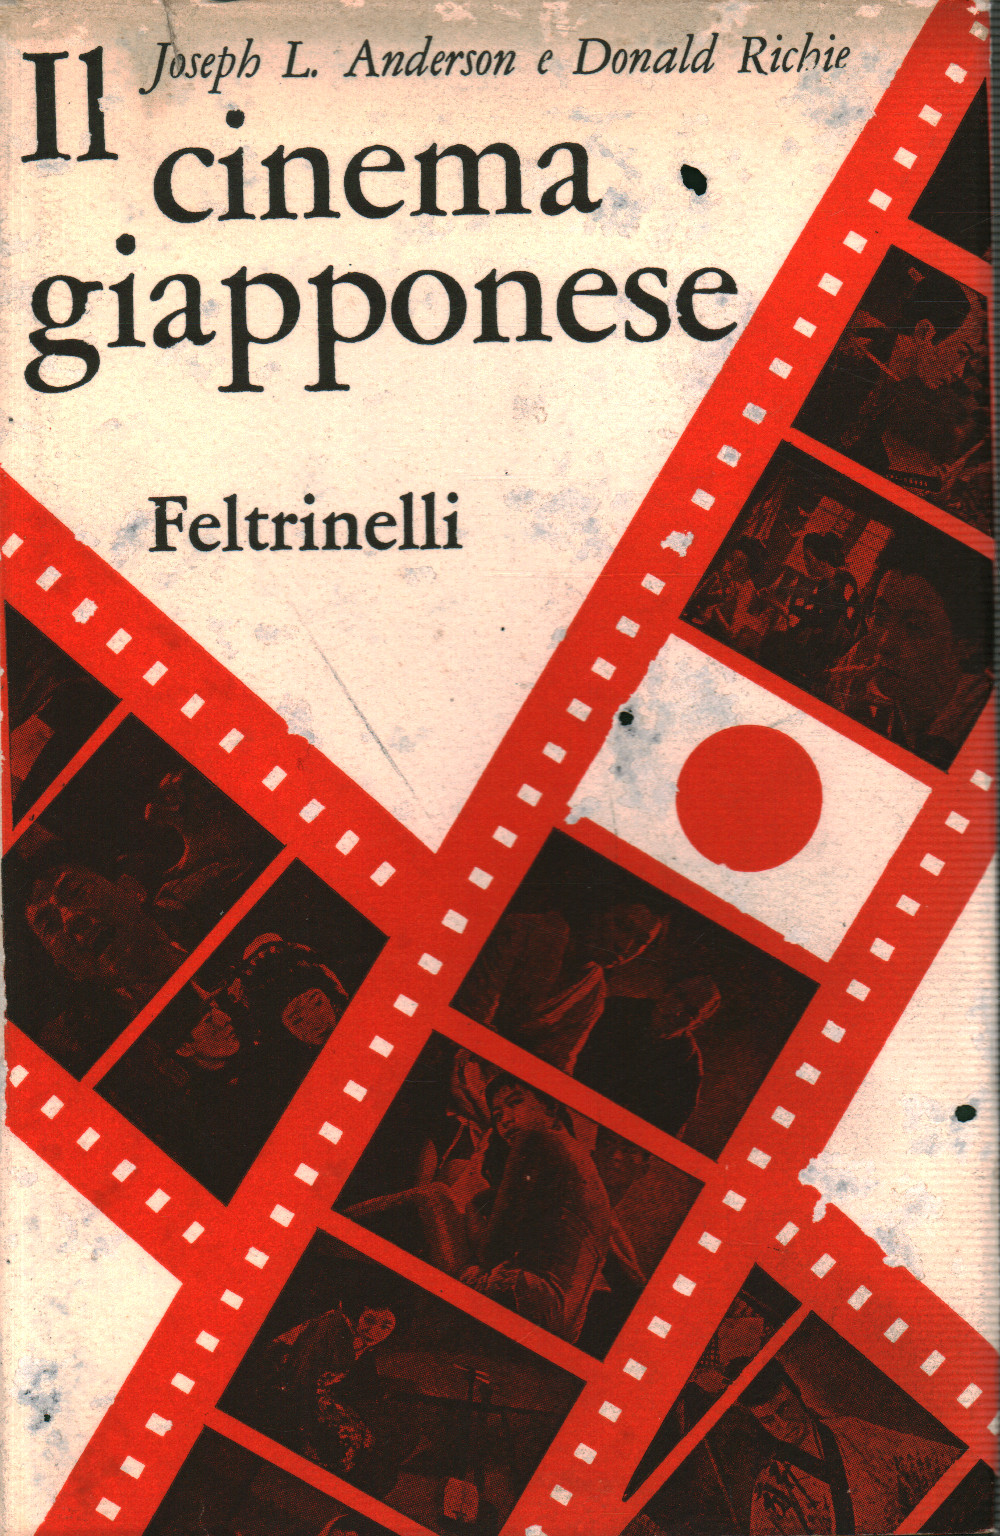 Il cinema giapponese, s.a.